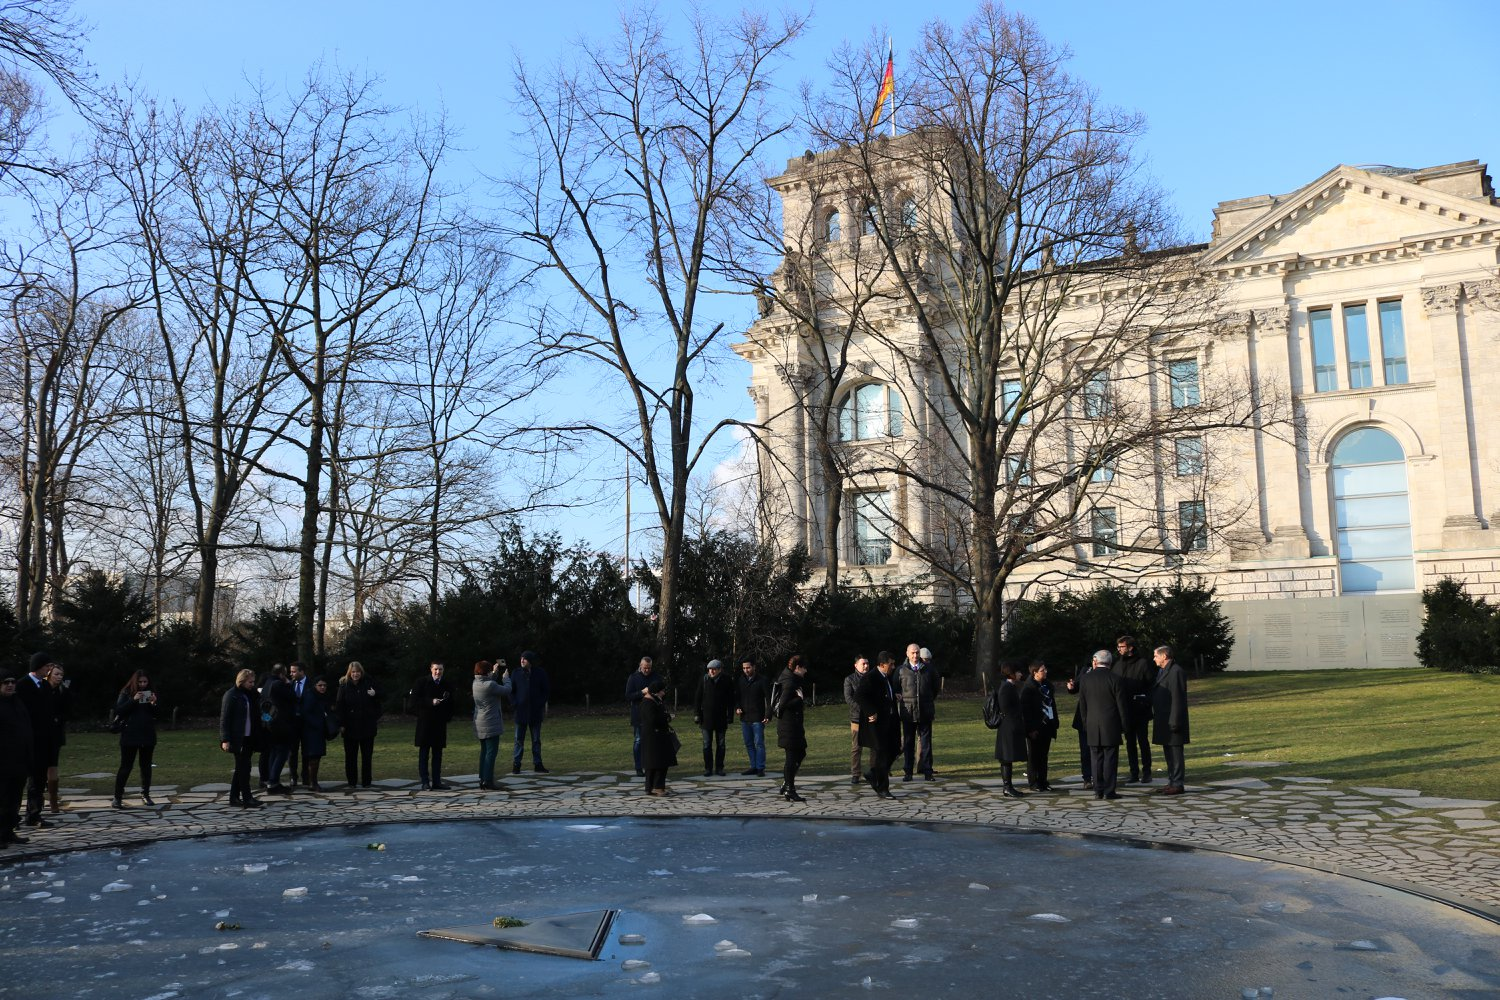 Visit to Memorial to the Sinti and Roma Victims of National Socialism in Berlin, Germany, February 2018 (Photo: Ave Media/RCC)